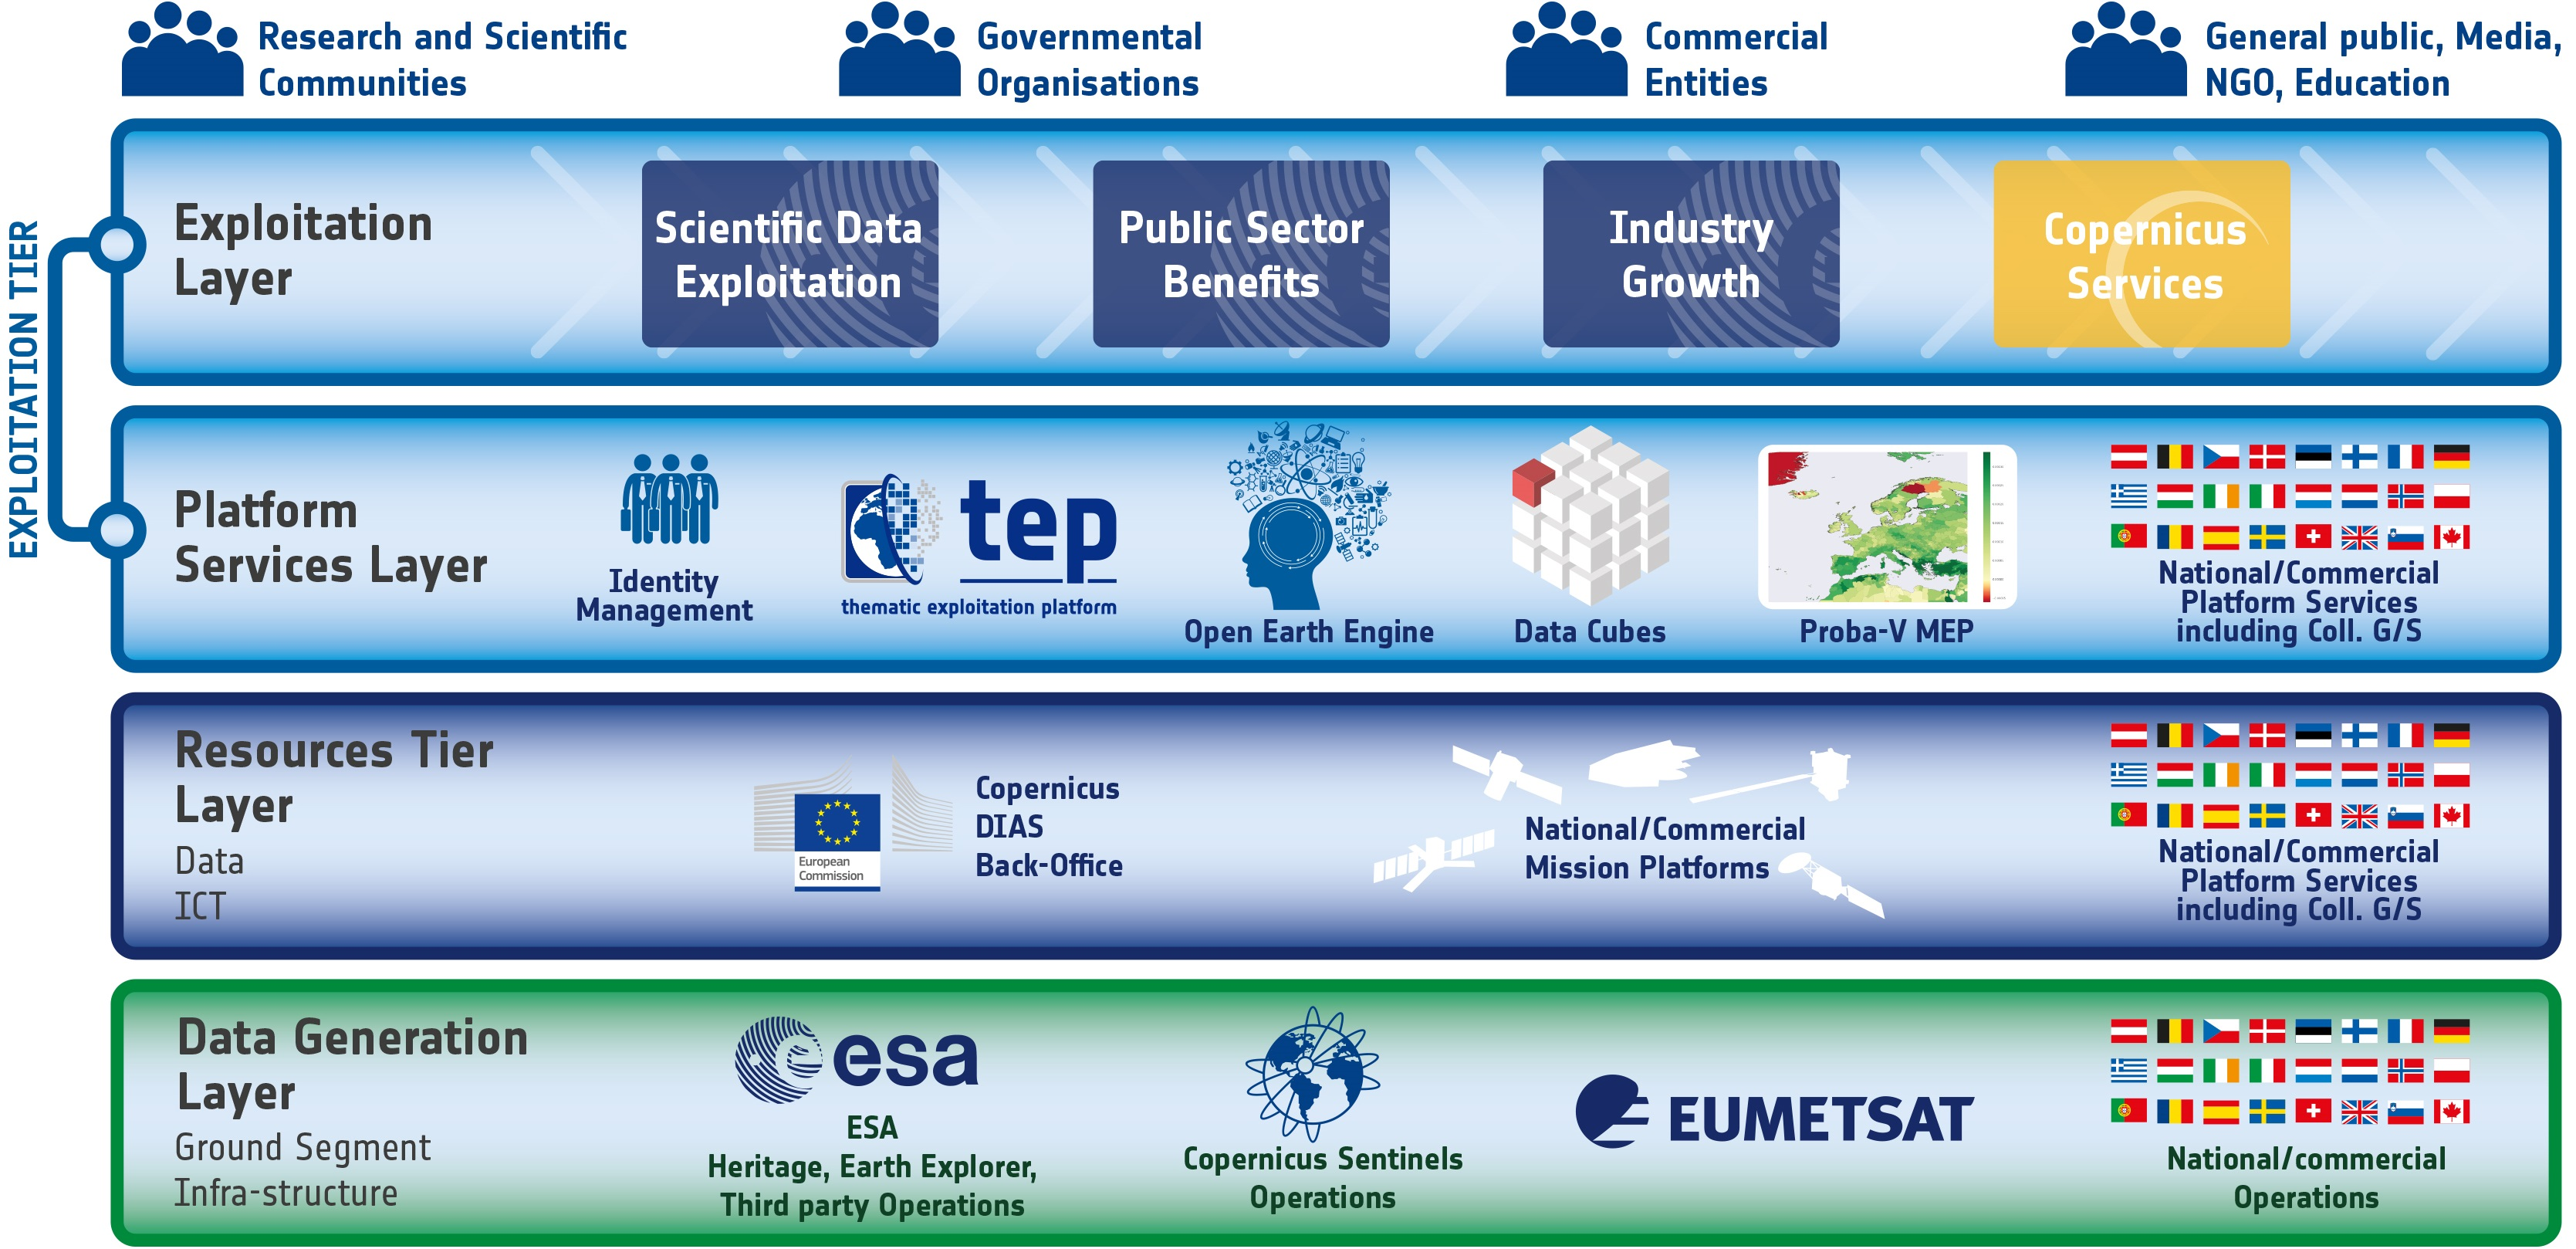 esa.int - European Data Cube Facility service: the ultimate EO resource for researchers and value-adders - eo science for society